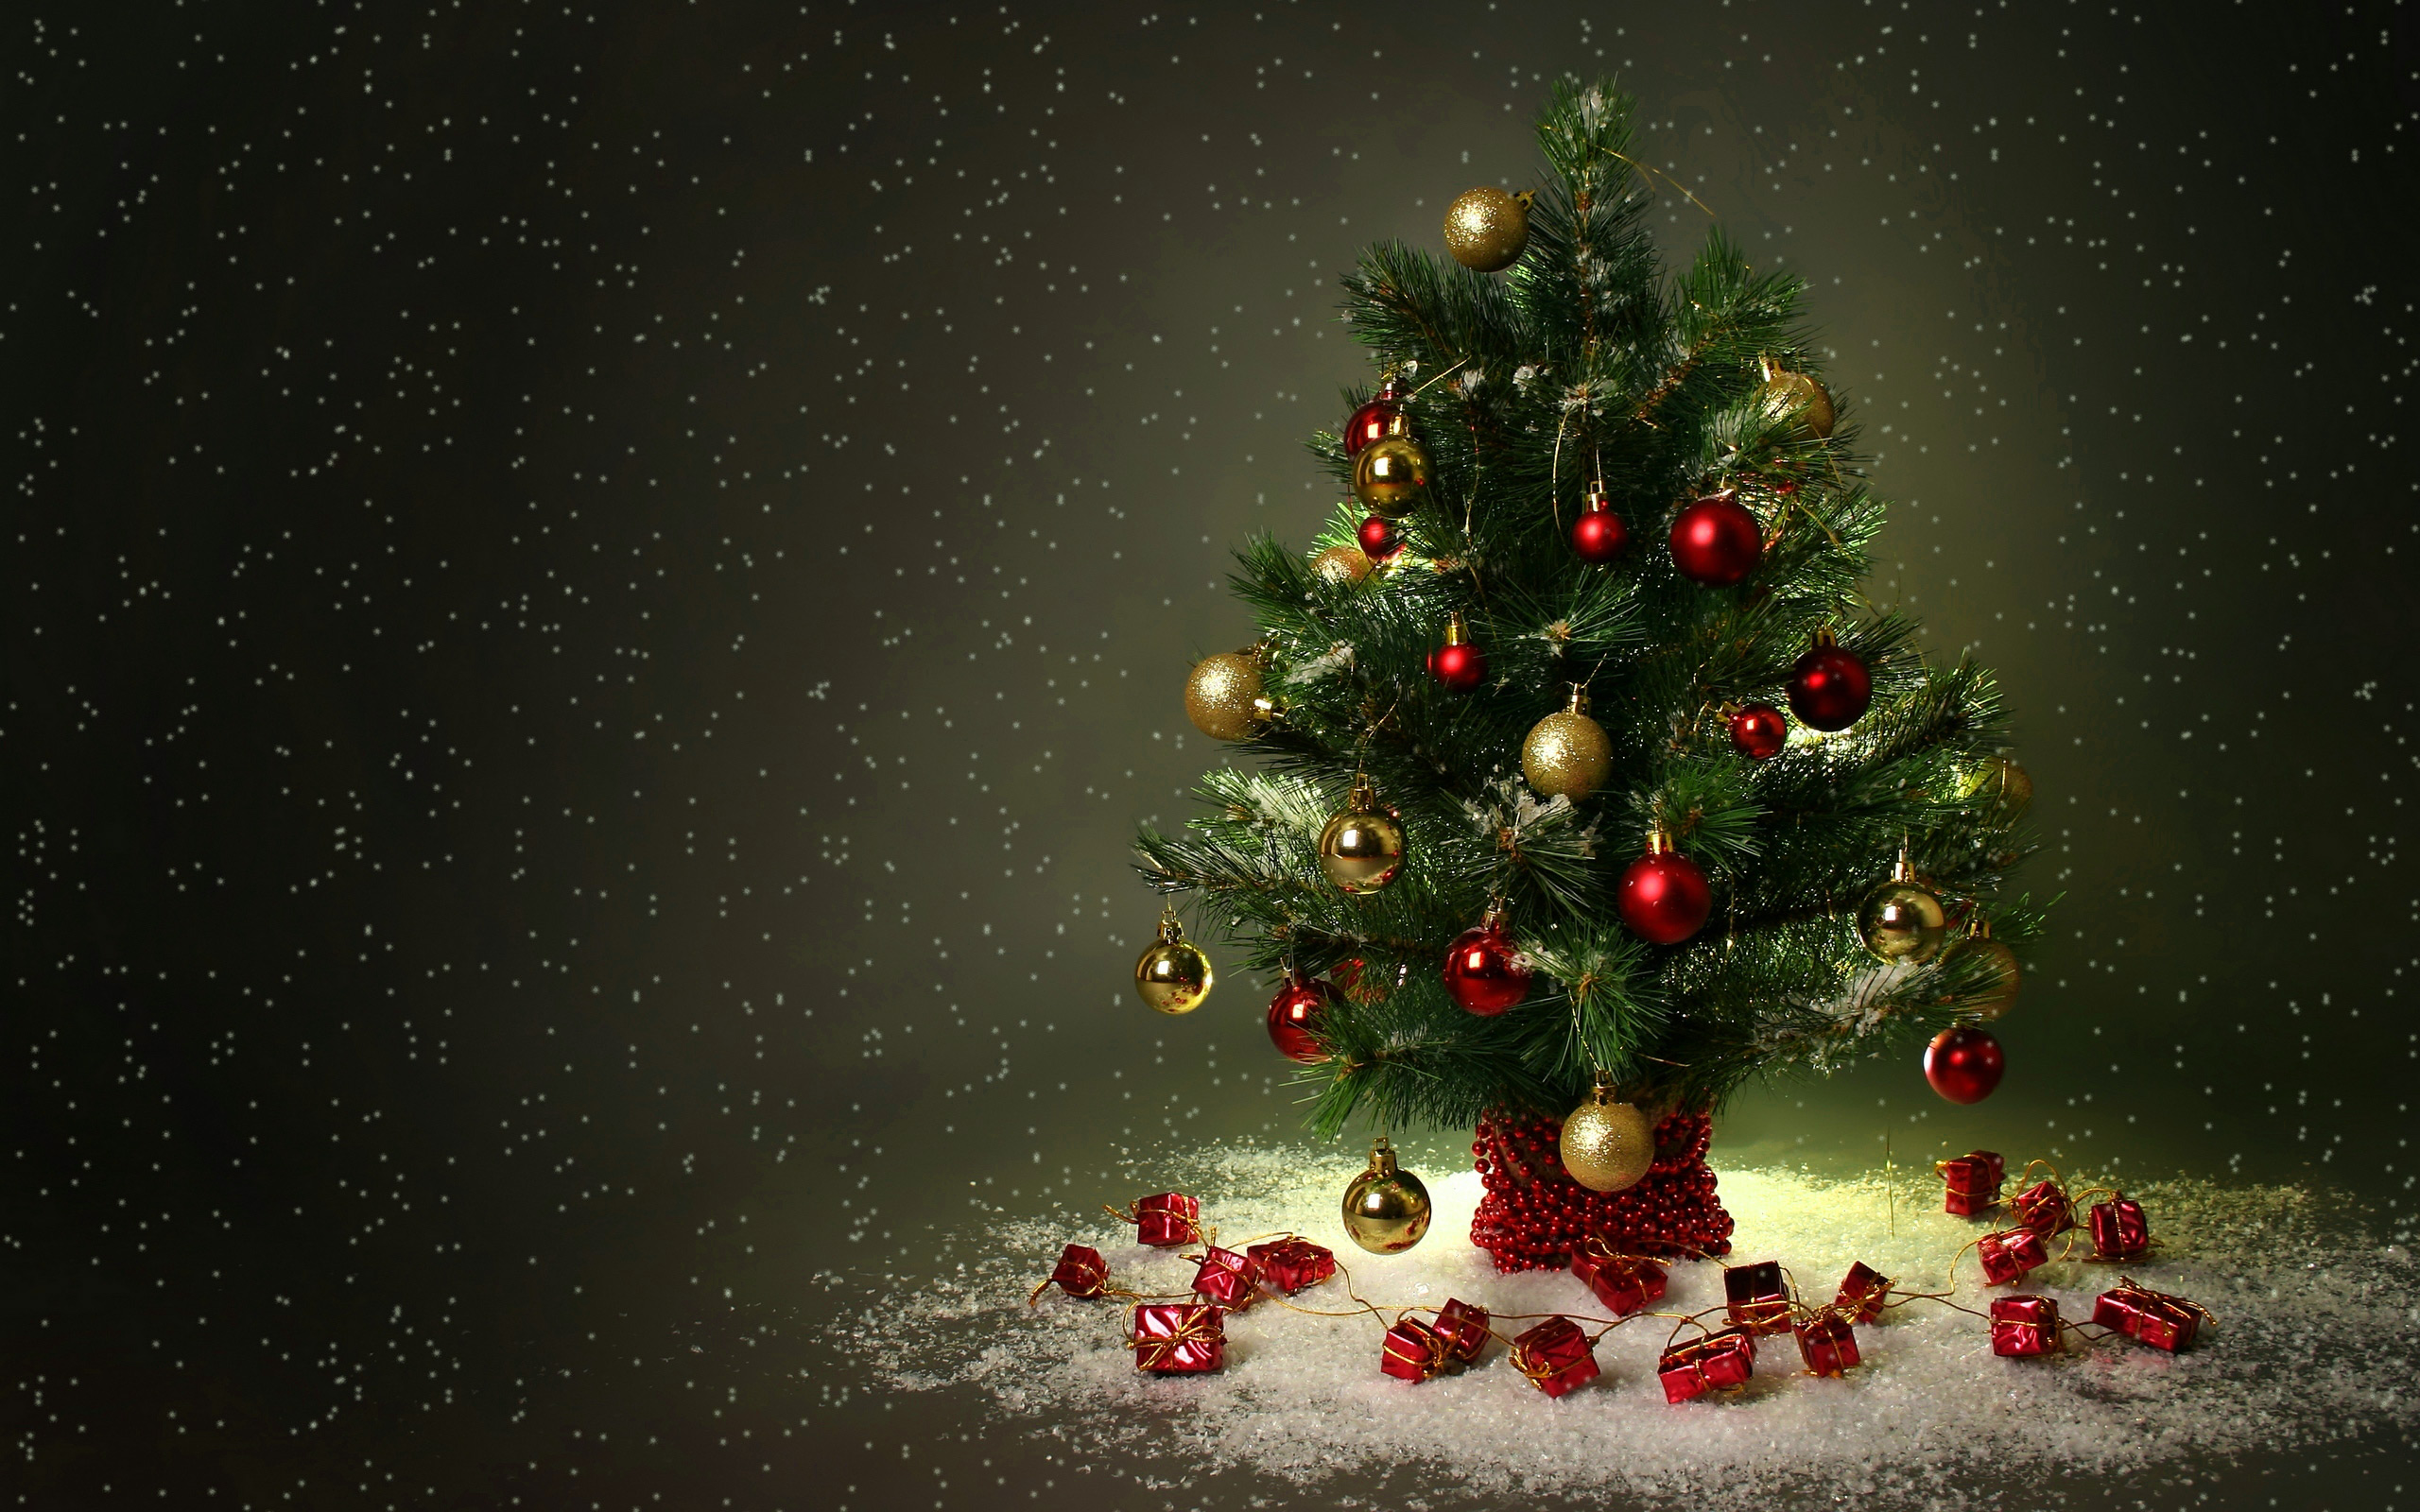 2560x1600 - Christmas Trees Backgrounds 3